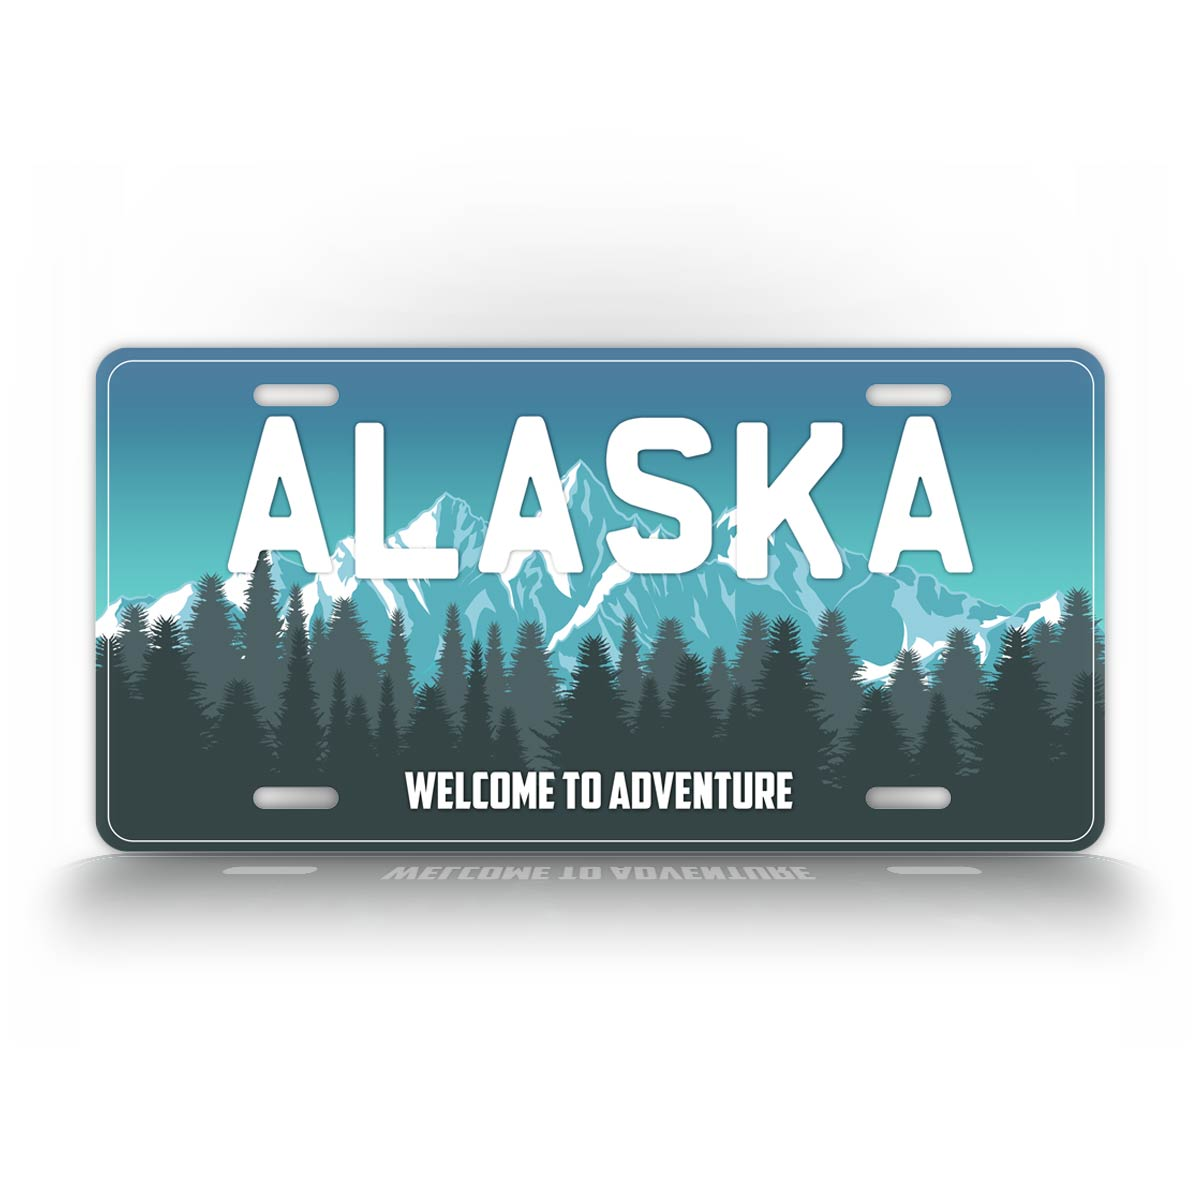 Alaska Welcome To Adventure License Plate